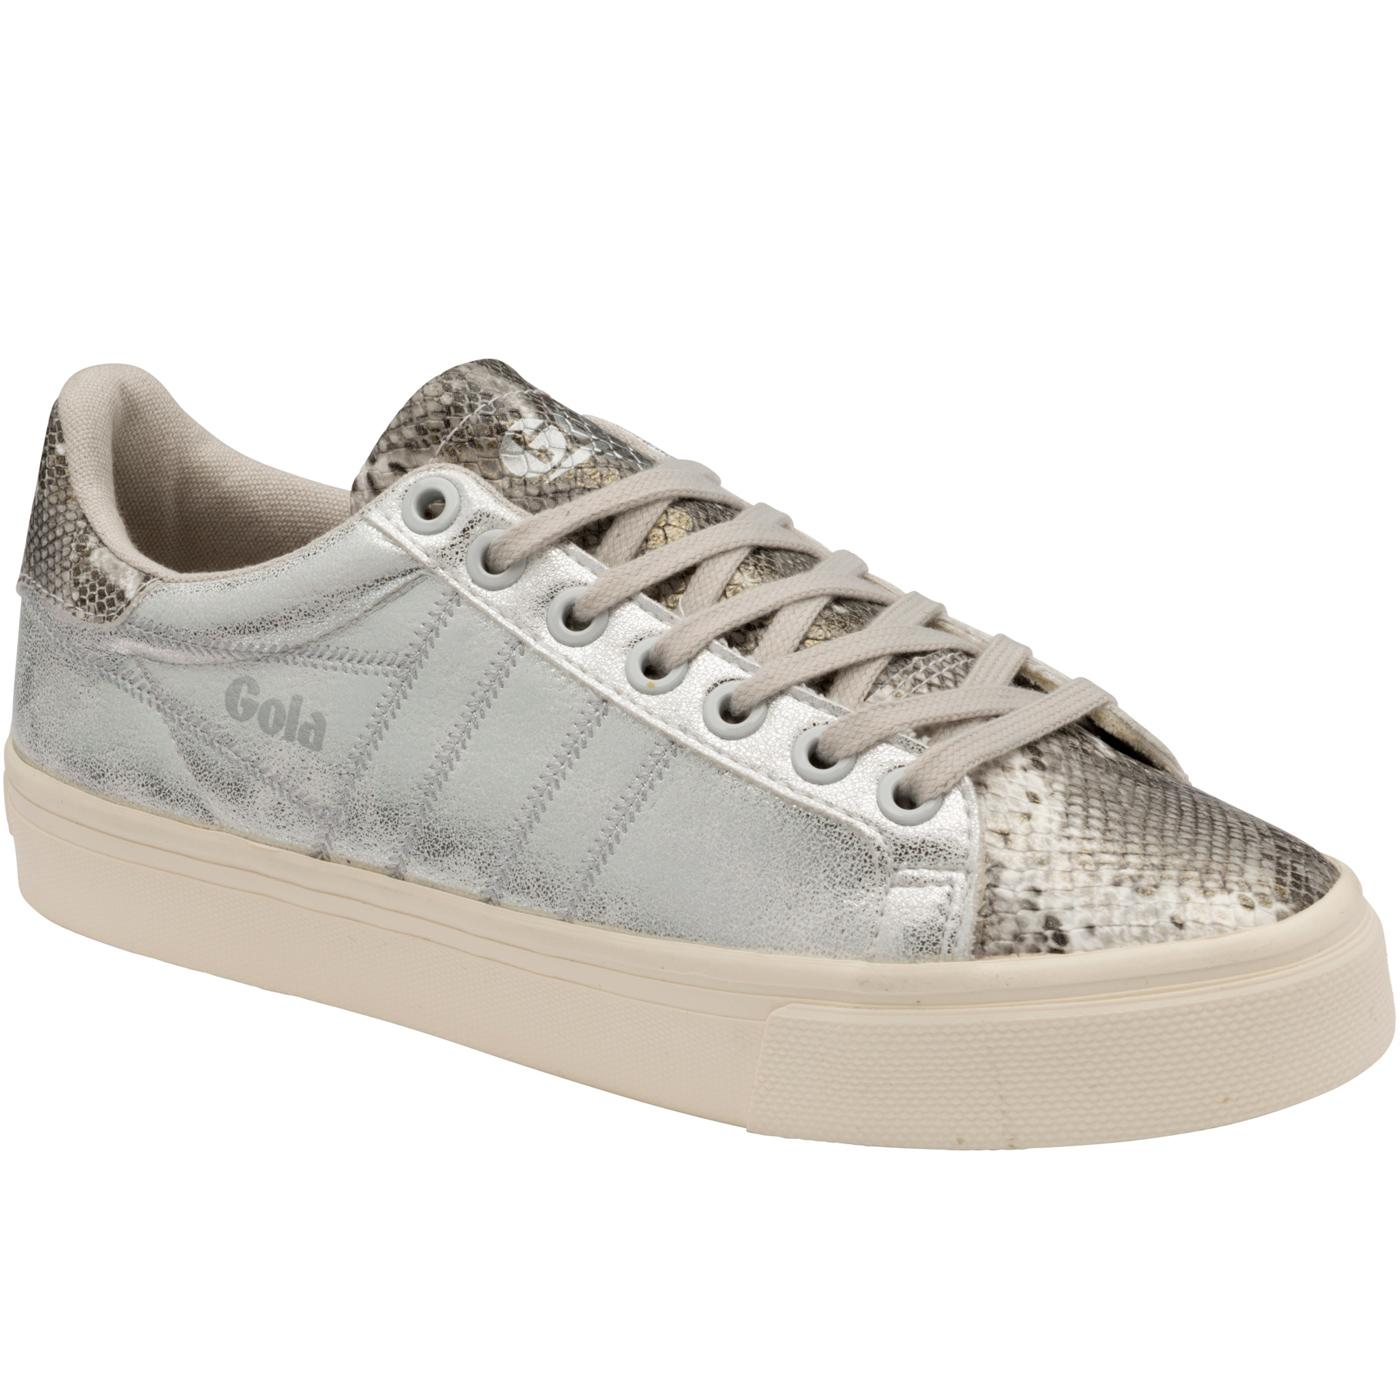 Orchid II GOLA Women's Retro Trainers SILVER/SNAKE